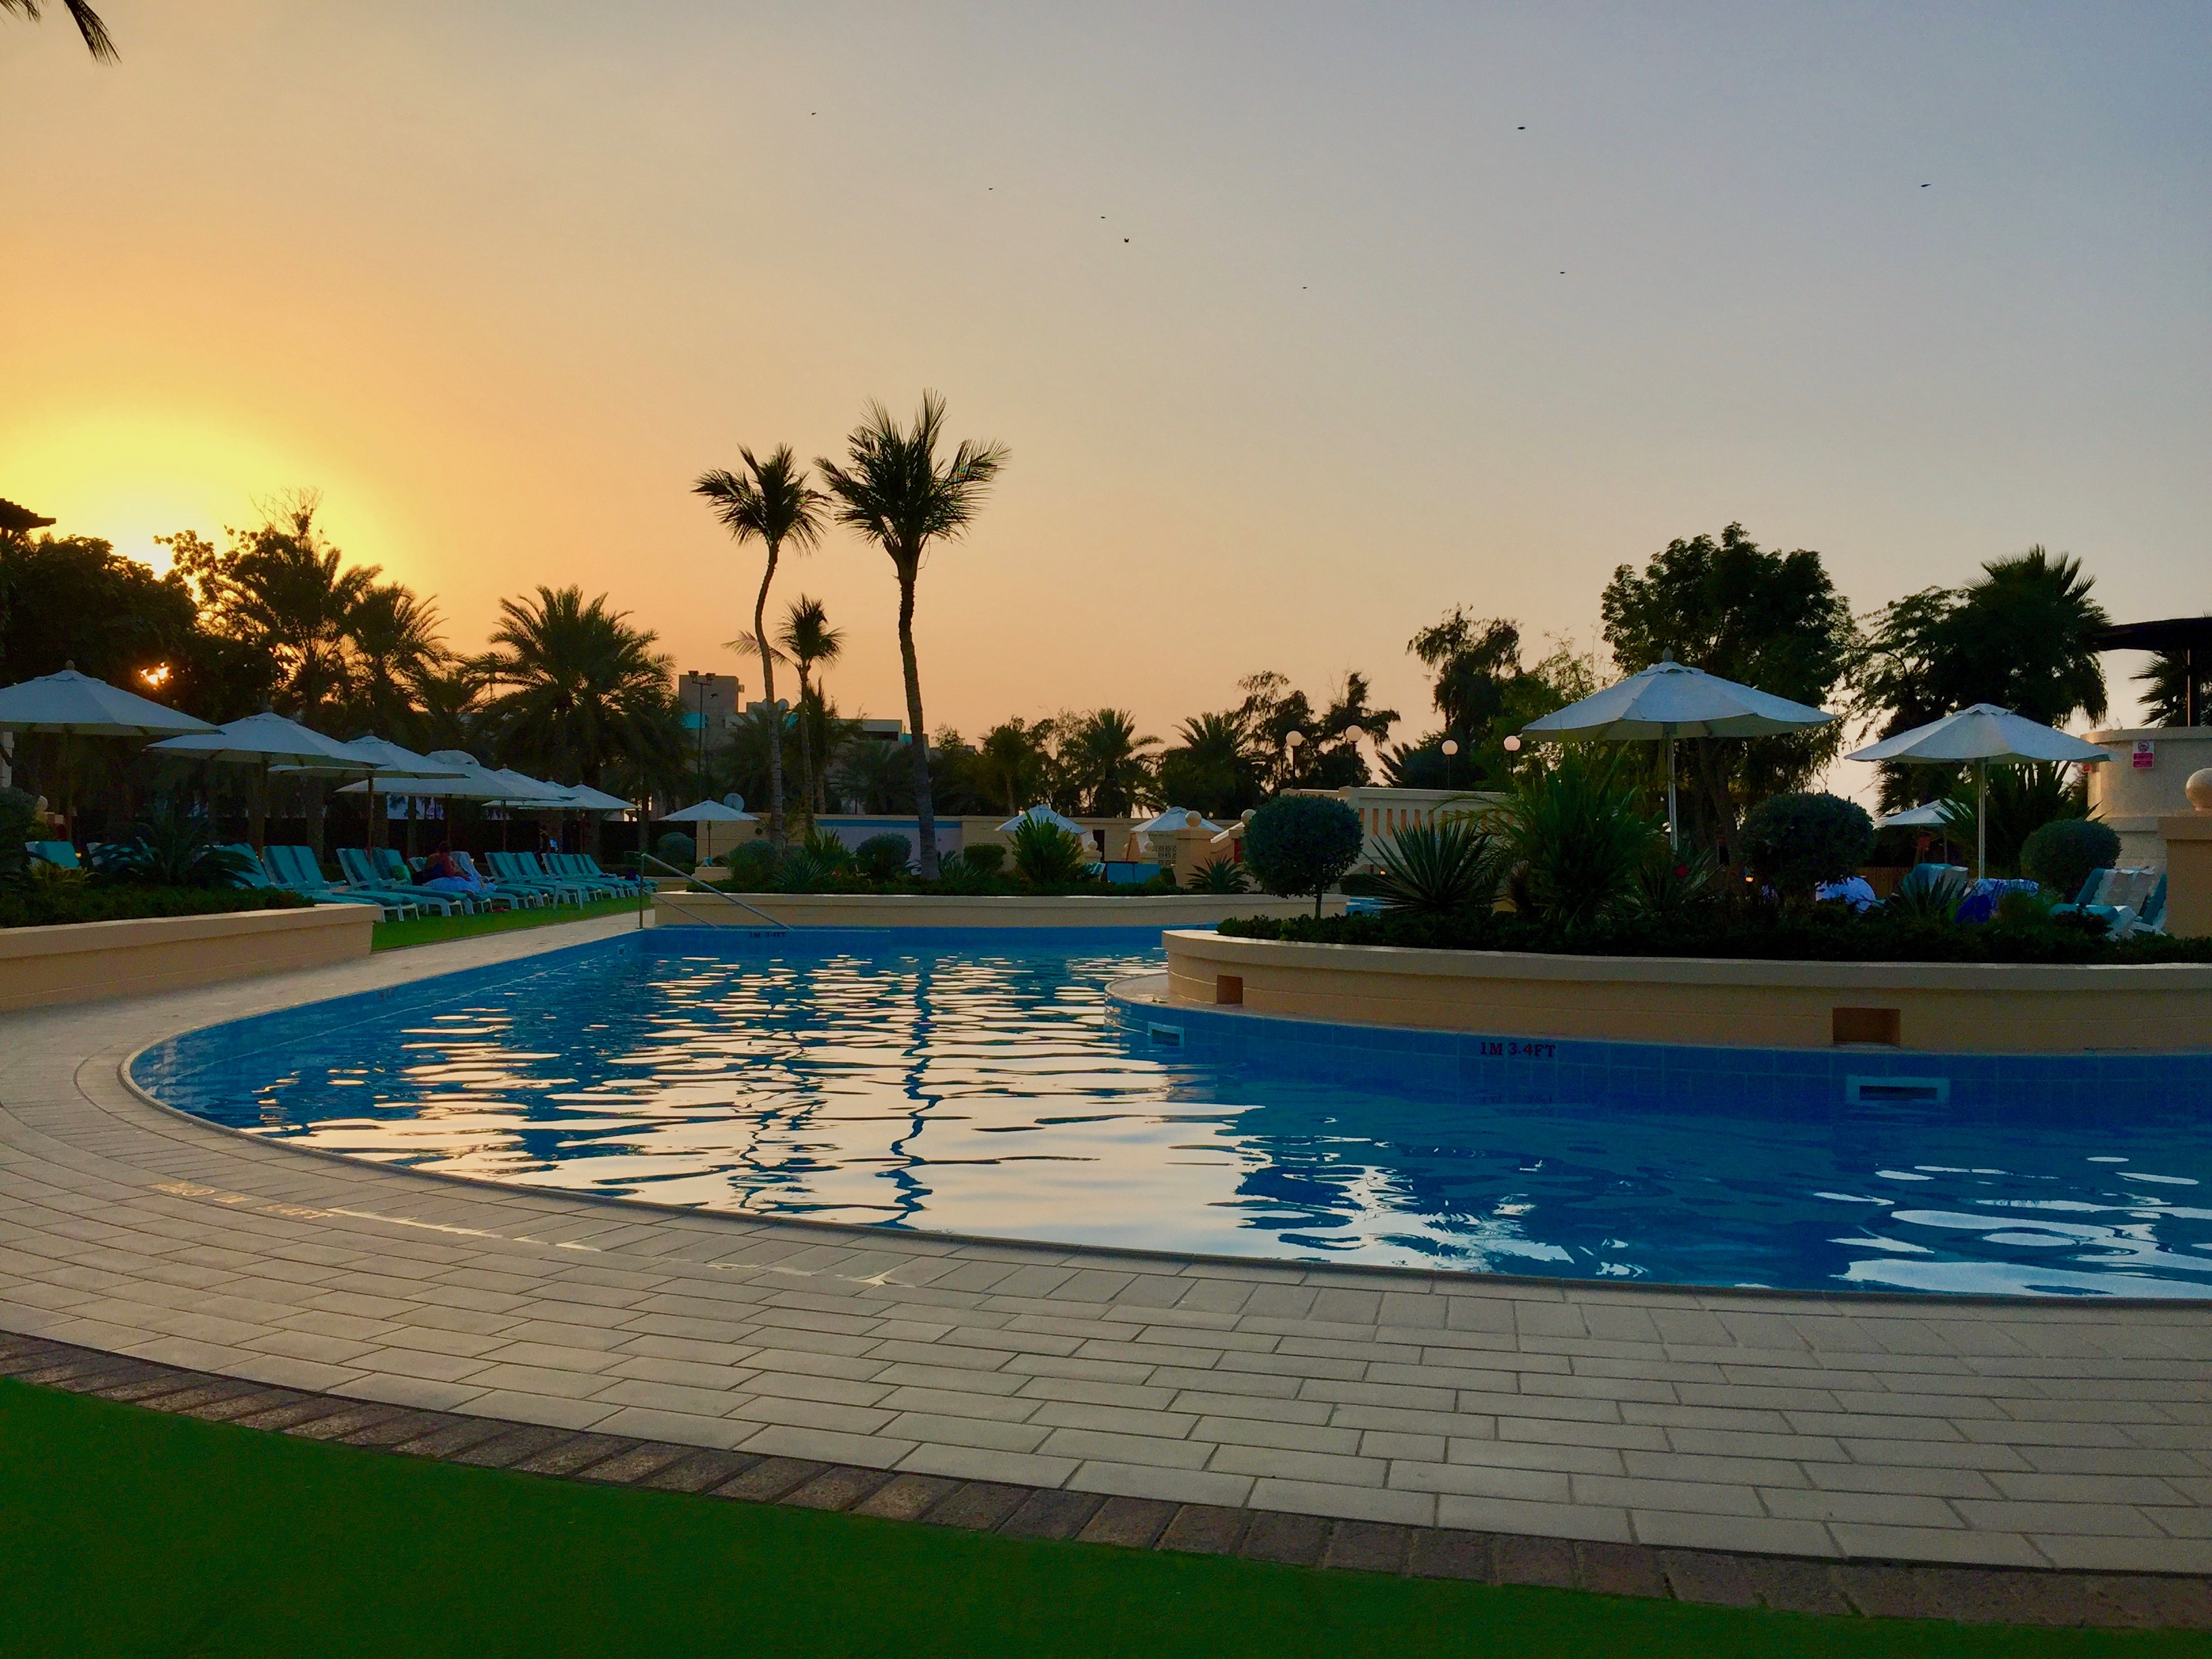 intercontinental_muscat_sunset_oman_lustforthesublime